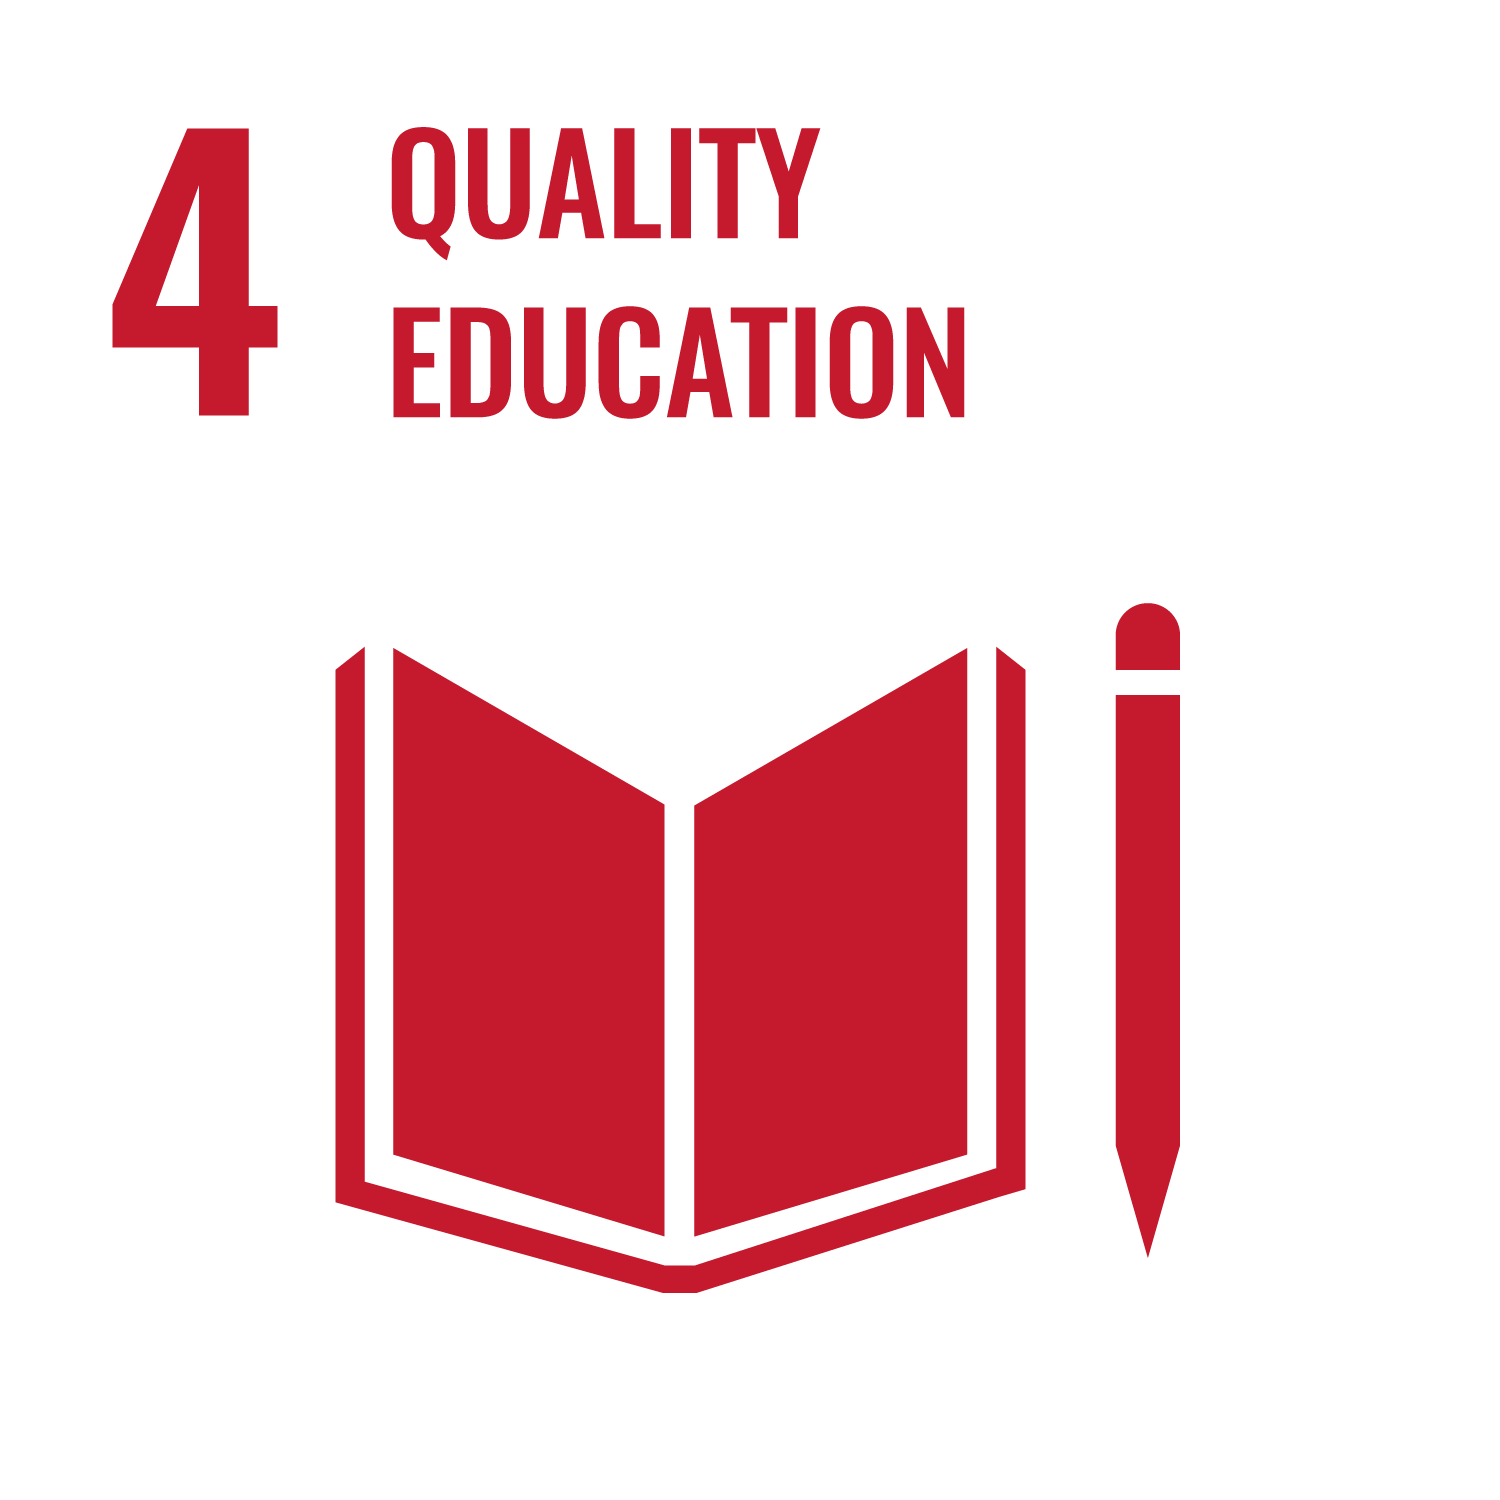 (4) Quality Education